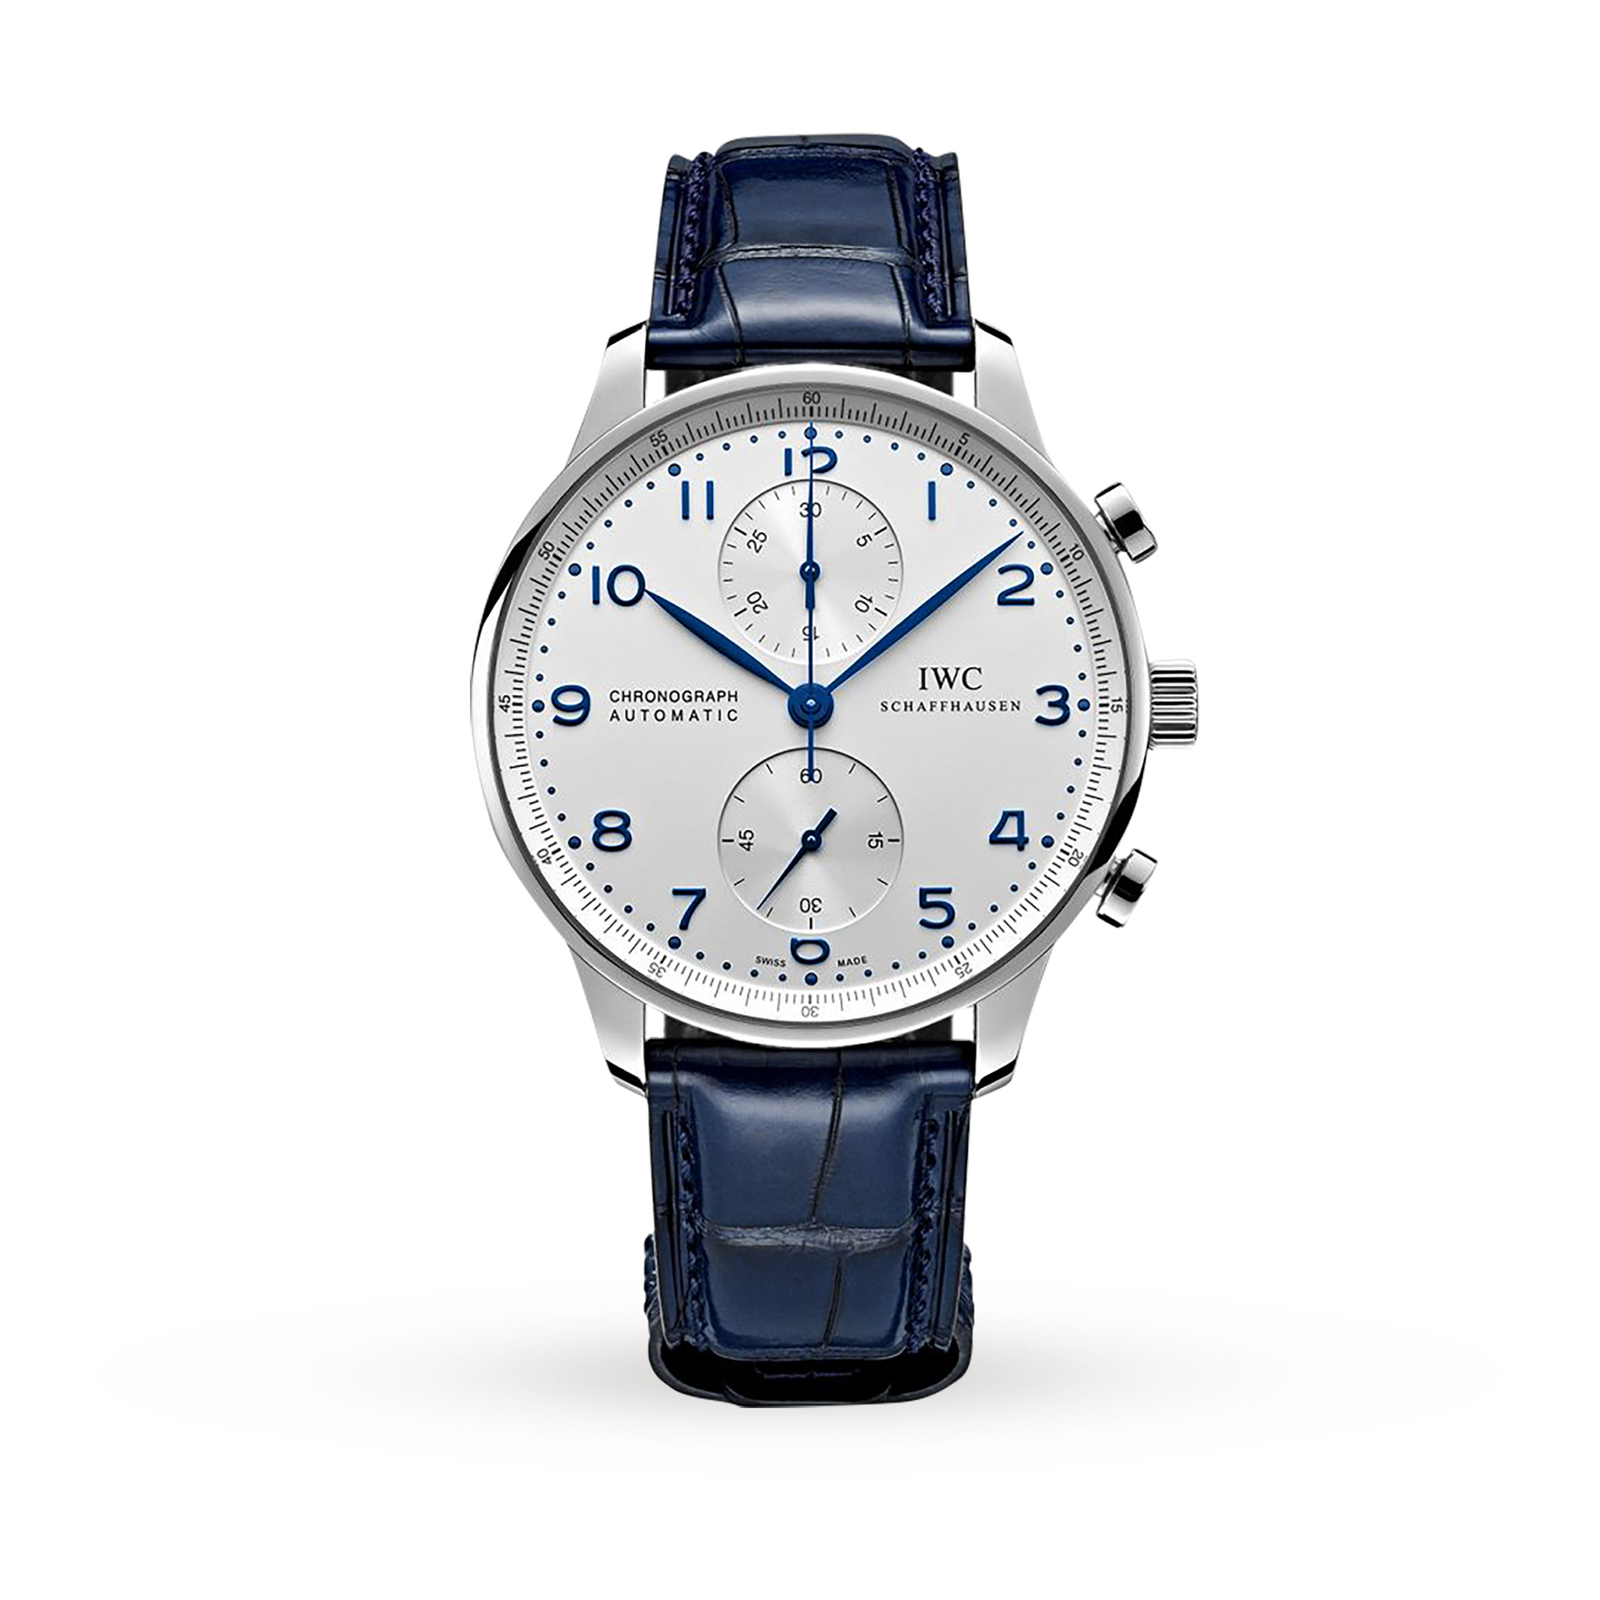 pictures IWC Portugieser Chronograph